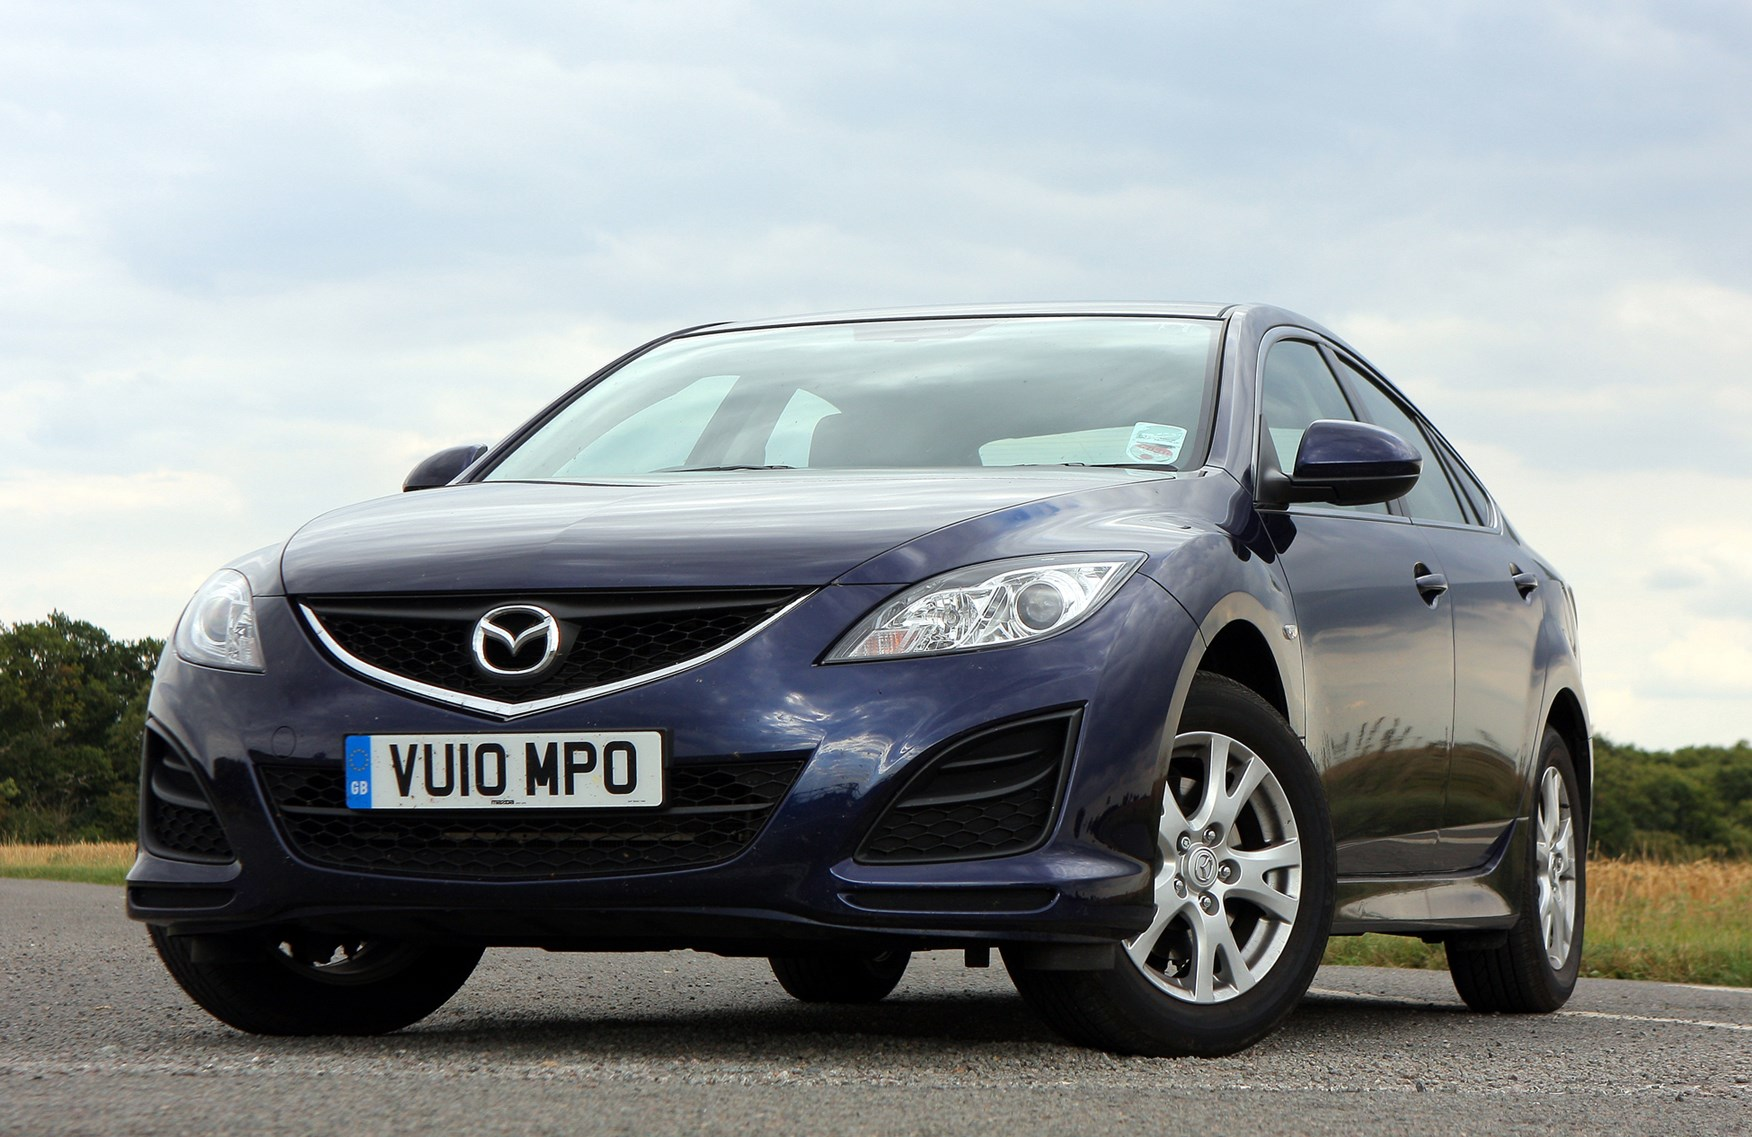 mazda 6 hatchback review 2007 2012 parkers. Black Bedroom Furniture Sets. Home Design Ideas